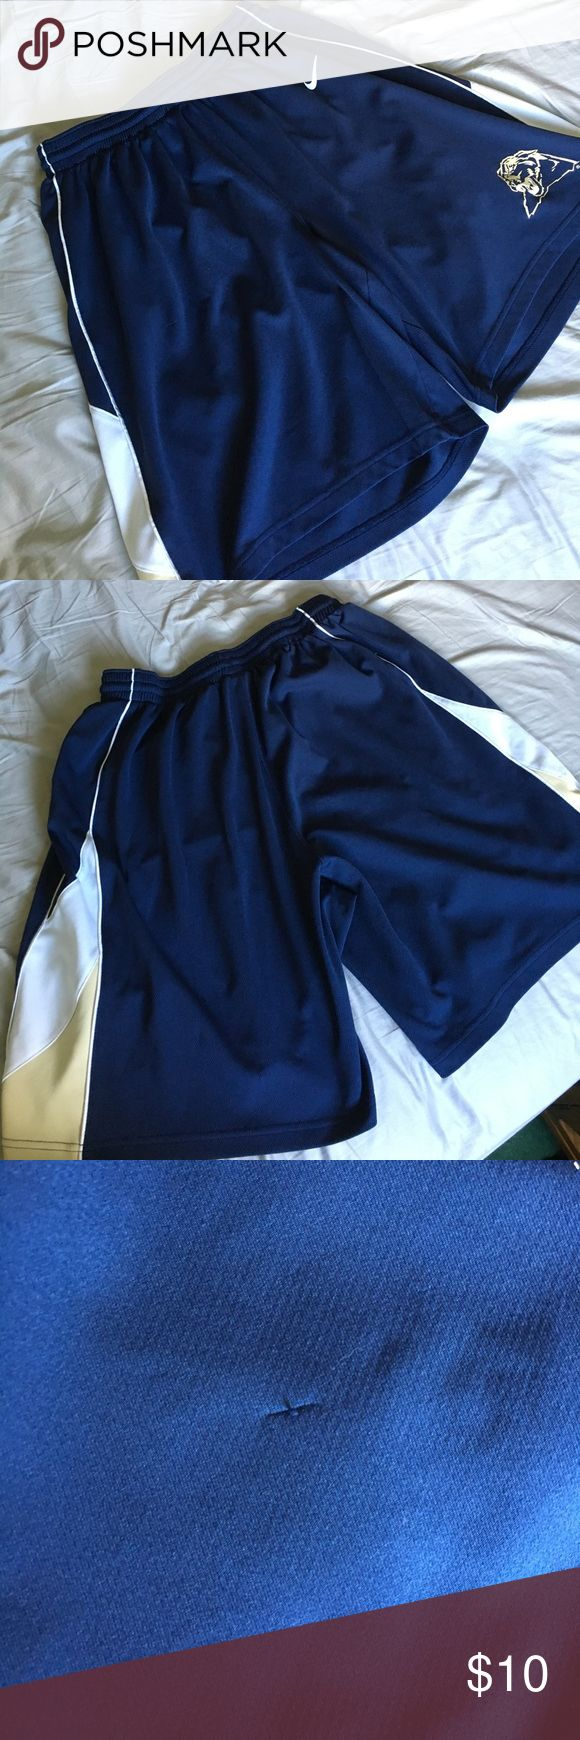 University of Pittsburgh Basketball Shorts Comes from a smoke free home. Small pulley, shown in pictures. Otherwise in great condition Nike Shorts Athletic